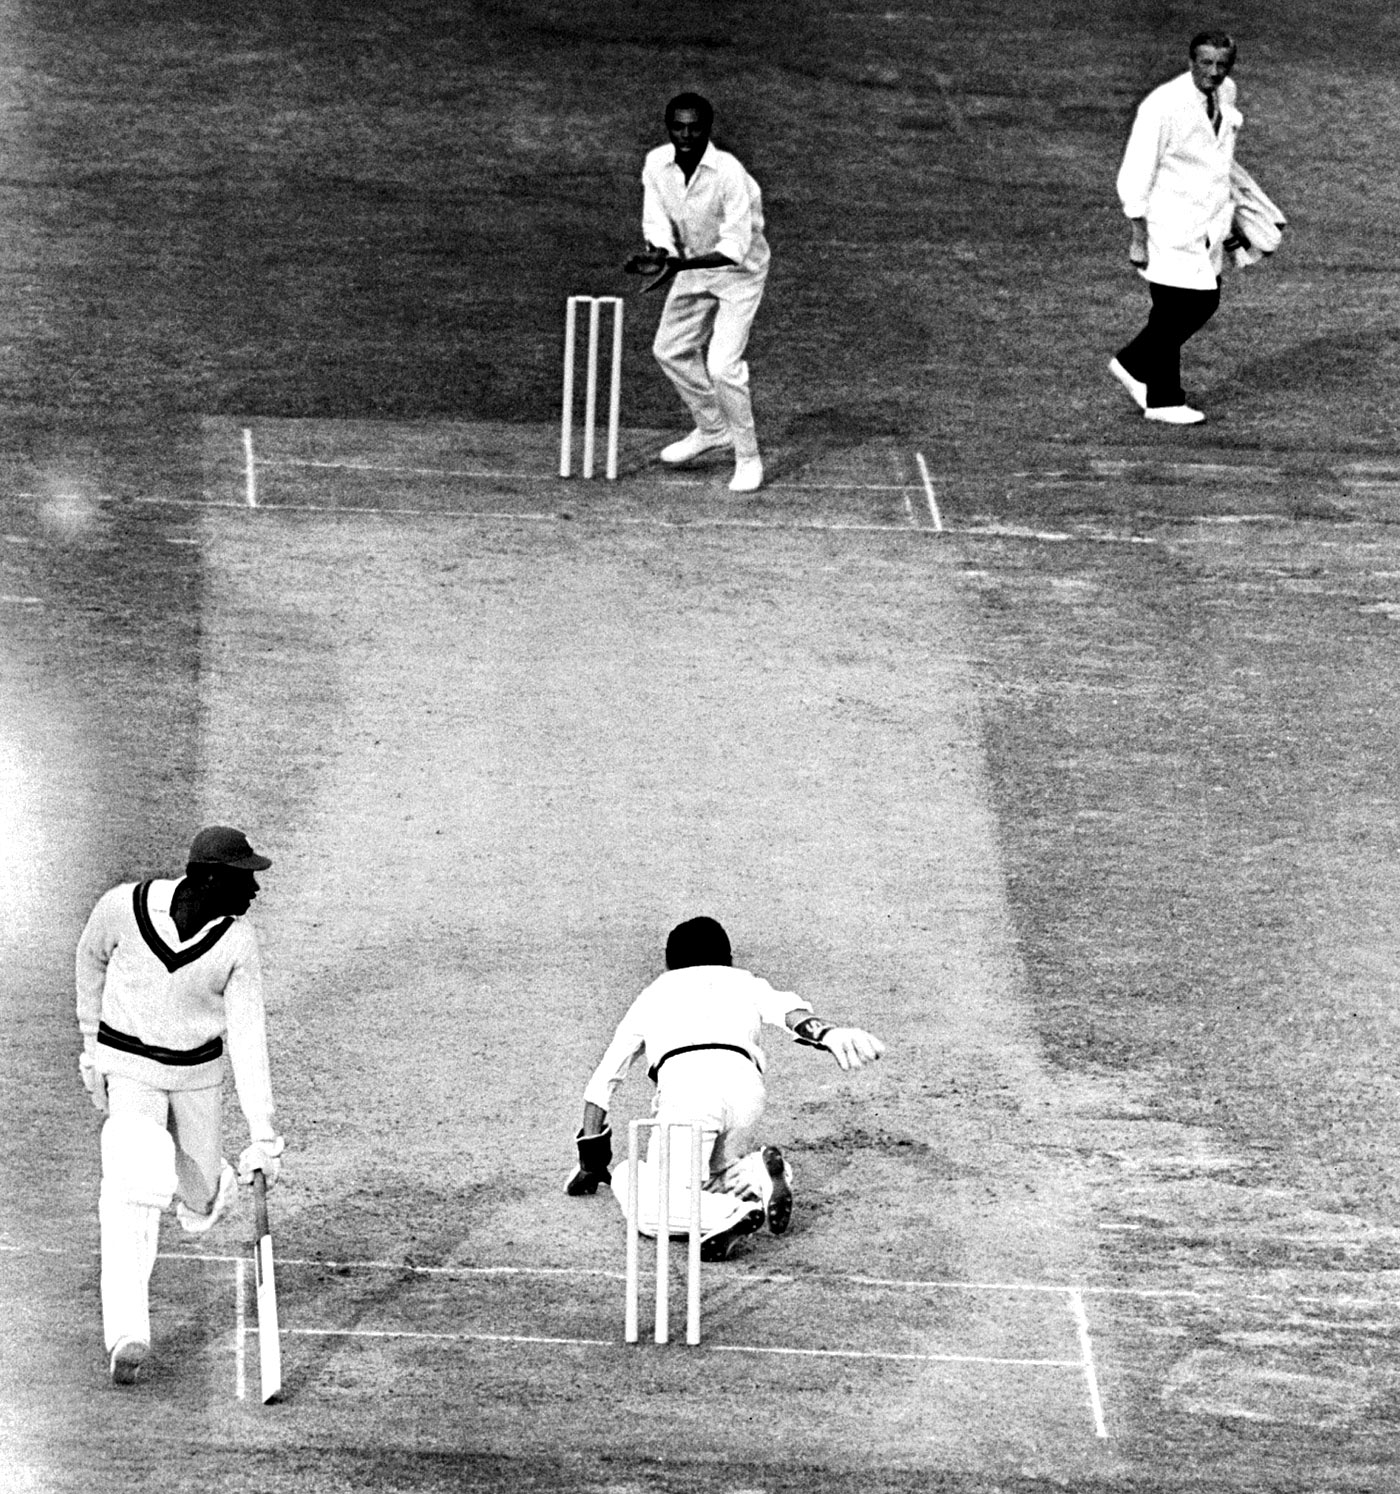 Clive Lloyd's 1972 Gillette Cup final innings set the course for limited-overs batting